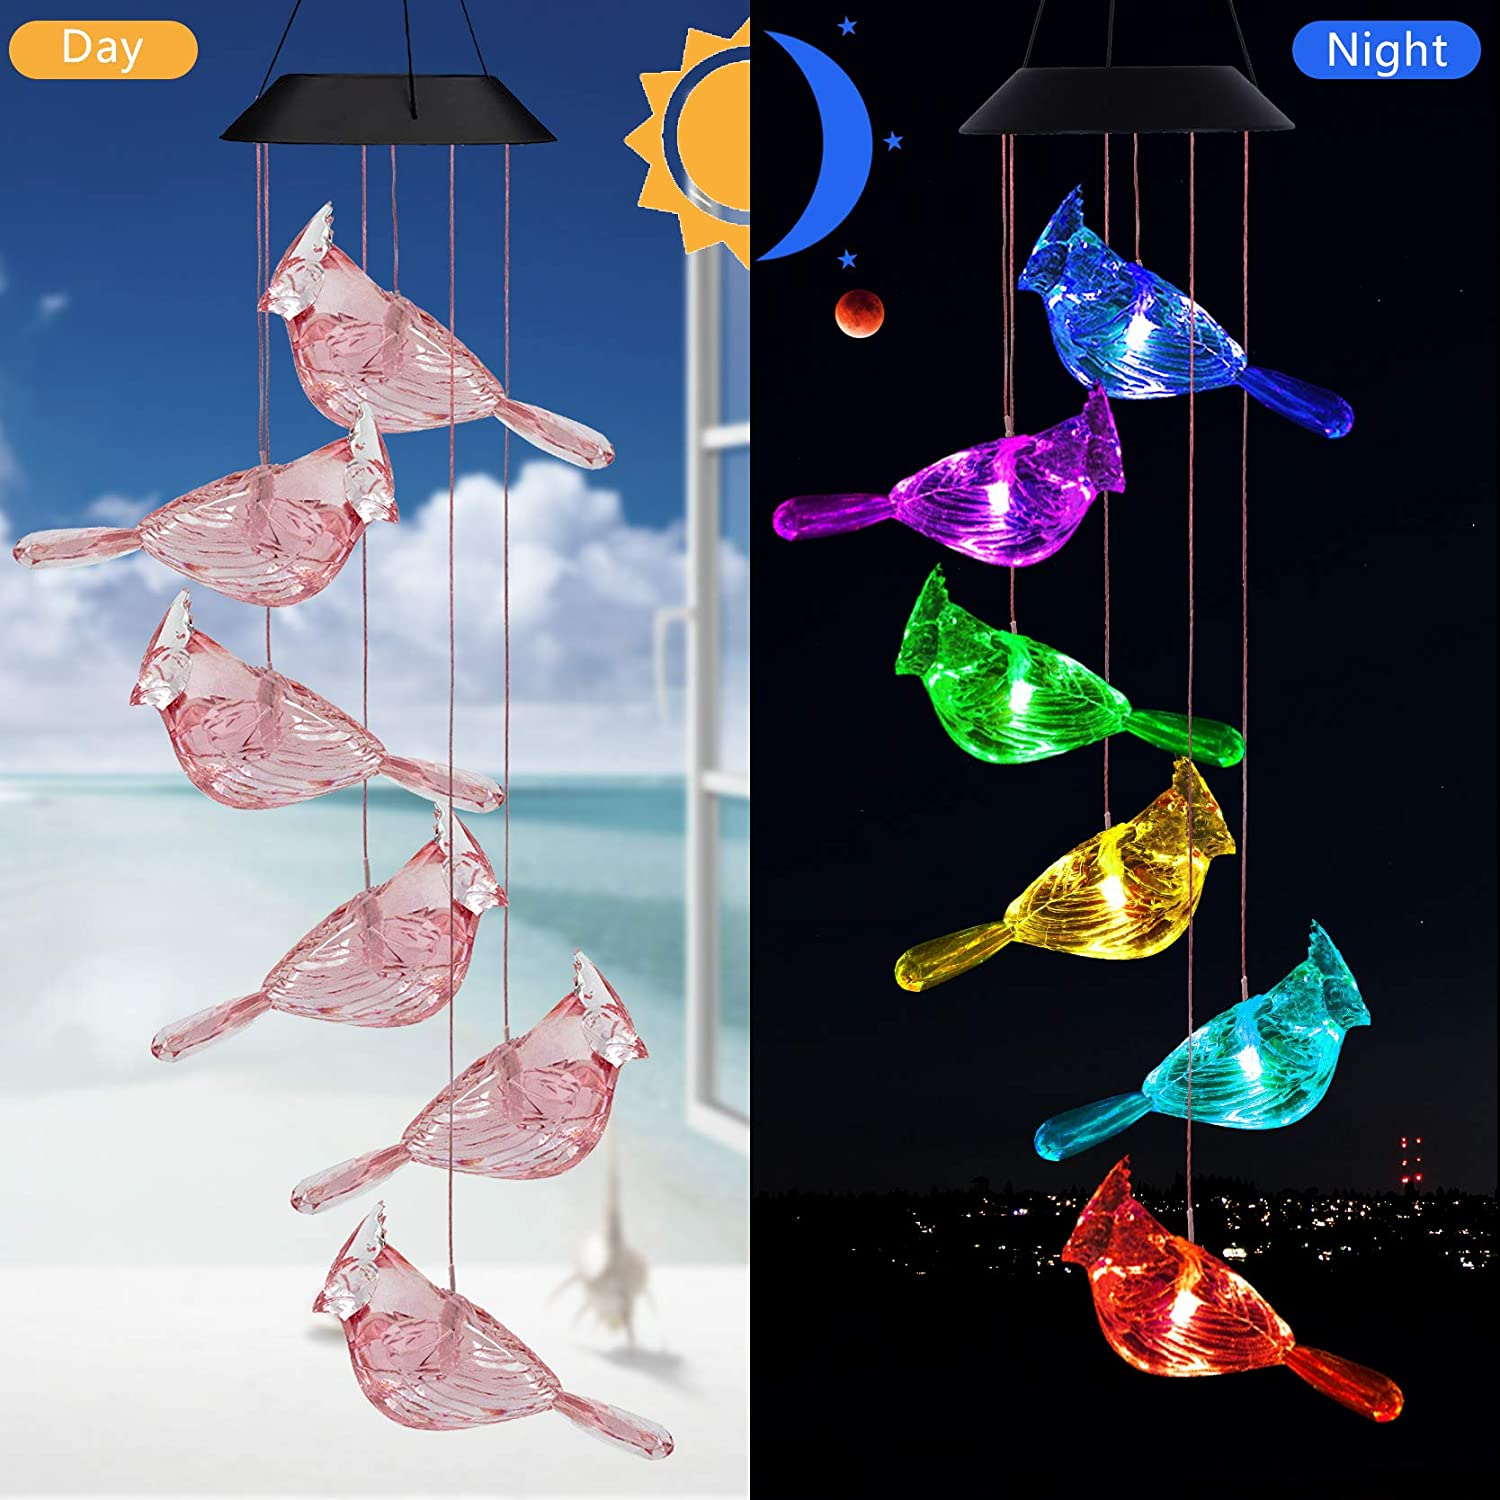 LED Solar Cardinal Wind Chime Light Outdoor-Waterproof Cardinal Solar Light, Solar Powered Changing Color Light Mobile Romantic Cardinal Wind-Bell for Home,Party,Festival Decor,Night Garden Decoration